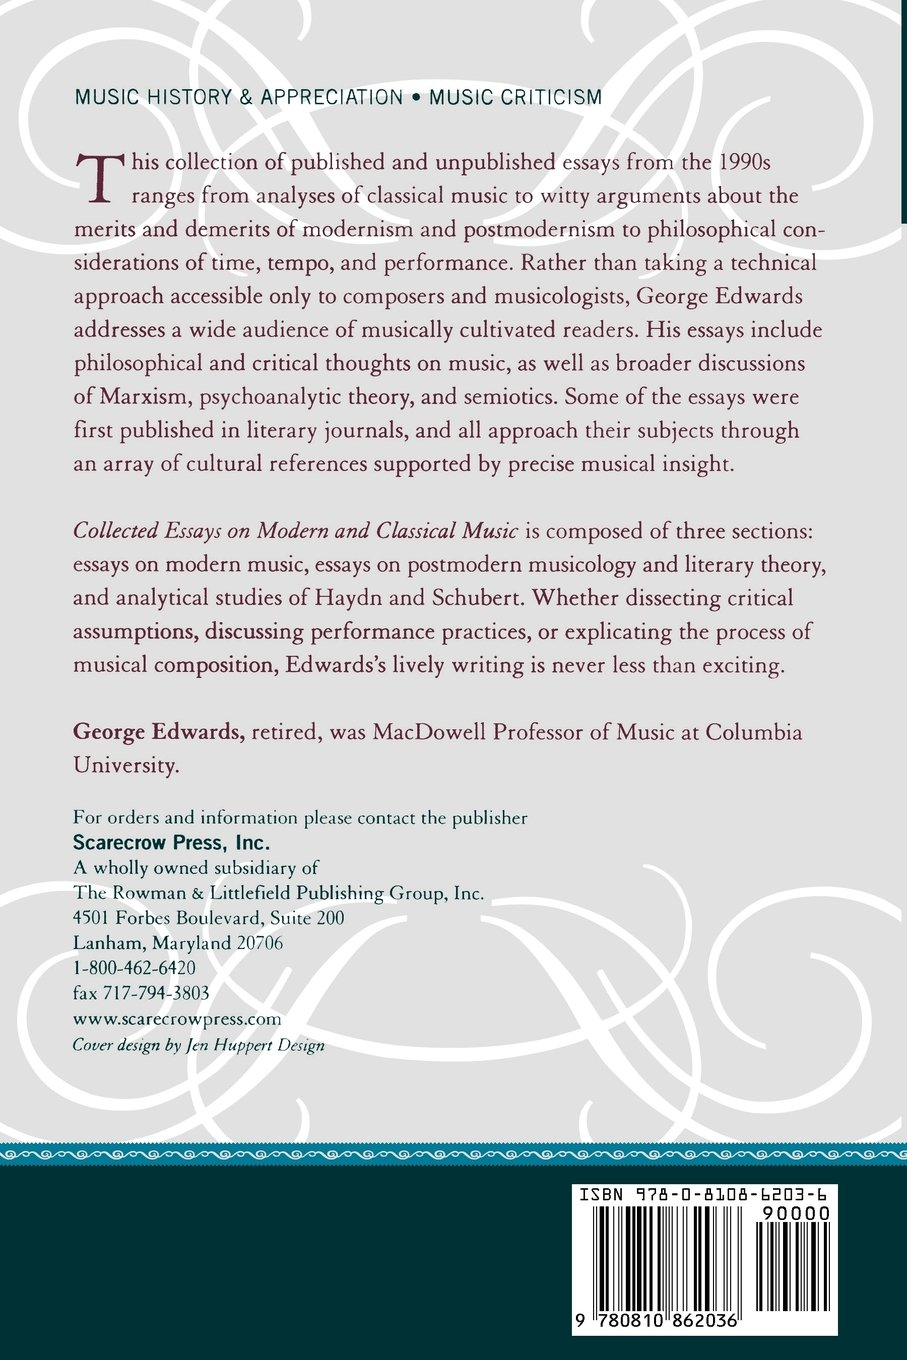 collected essays on modern and classical music george edwards collected essays on modern and classical music george edwards fred lerdahl 9780810862036 com books